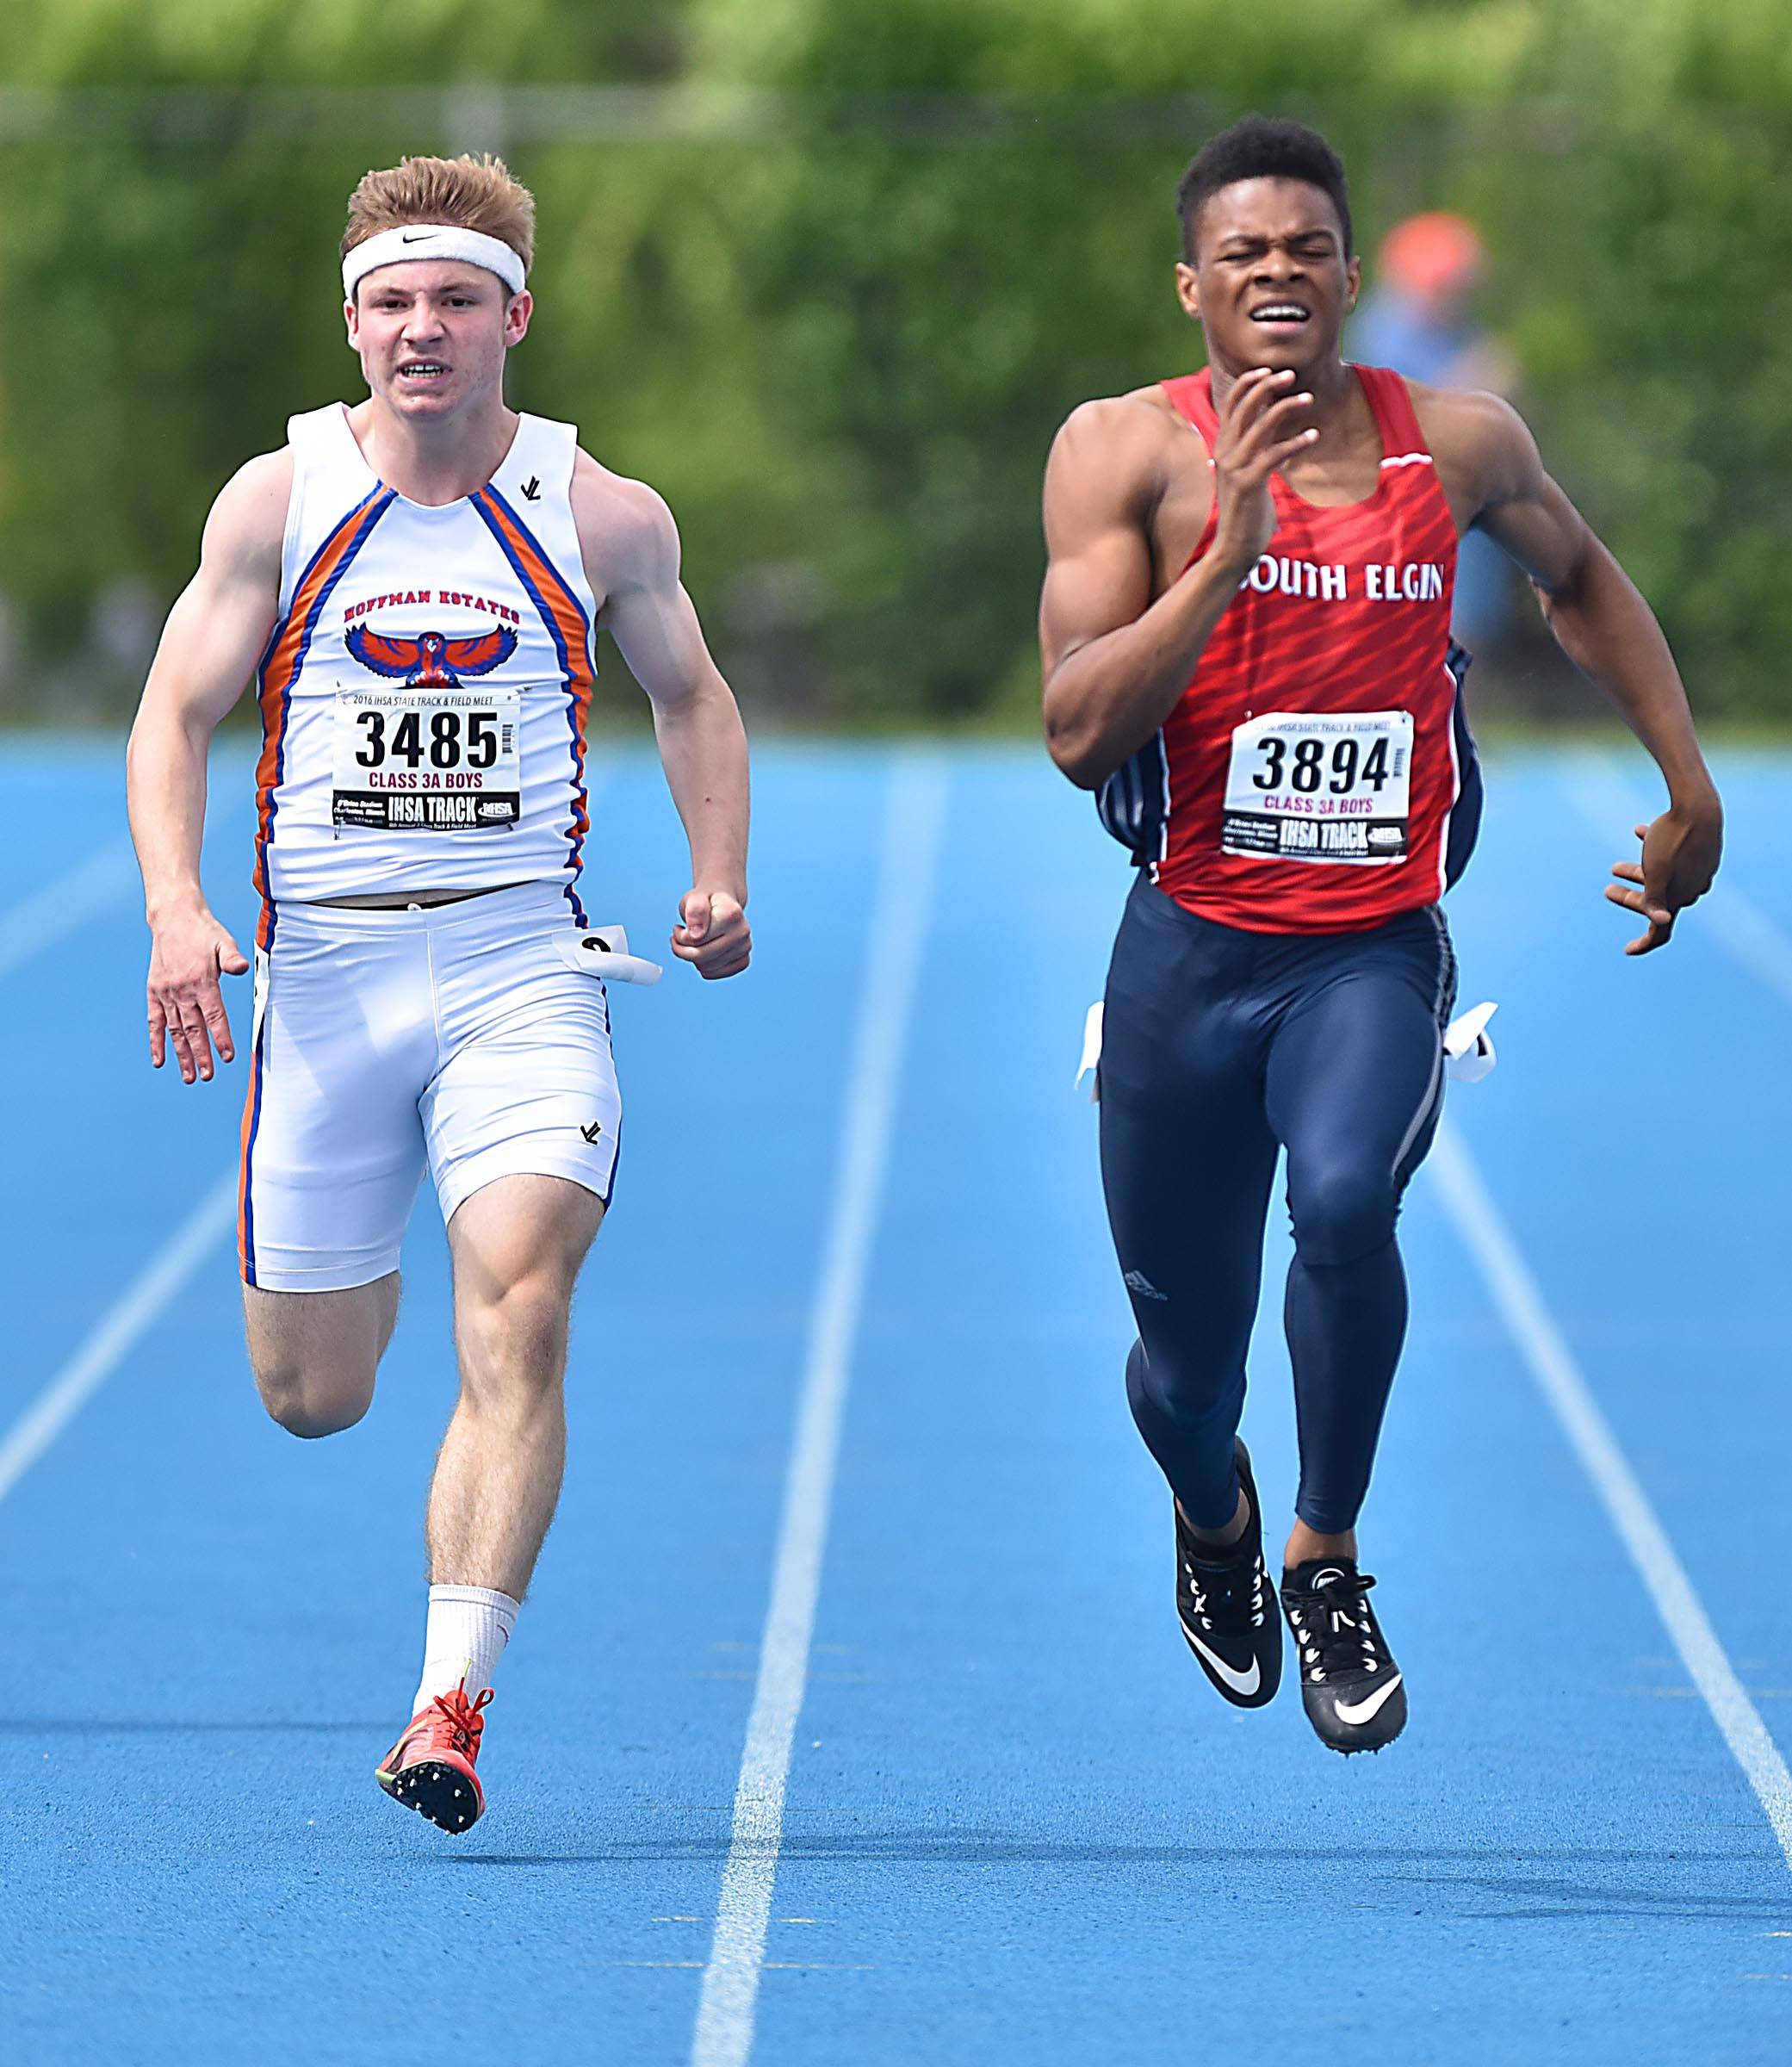 South Elgin's Jaurice Thomas and Hoffman Estates' Declan Rustay battle to the finish in the 200 meter dash Friday at the boys track state finals prelim events in O'Brien Stadium at Eastern Illinois University in Charleston. Thomas won and Rustay finished less than a quarter of a second behind.